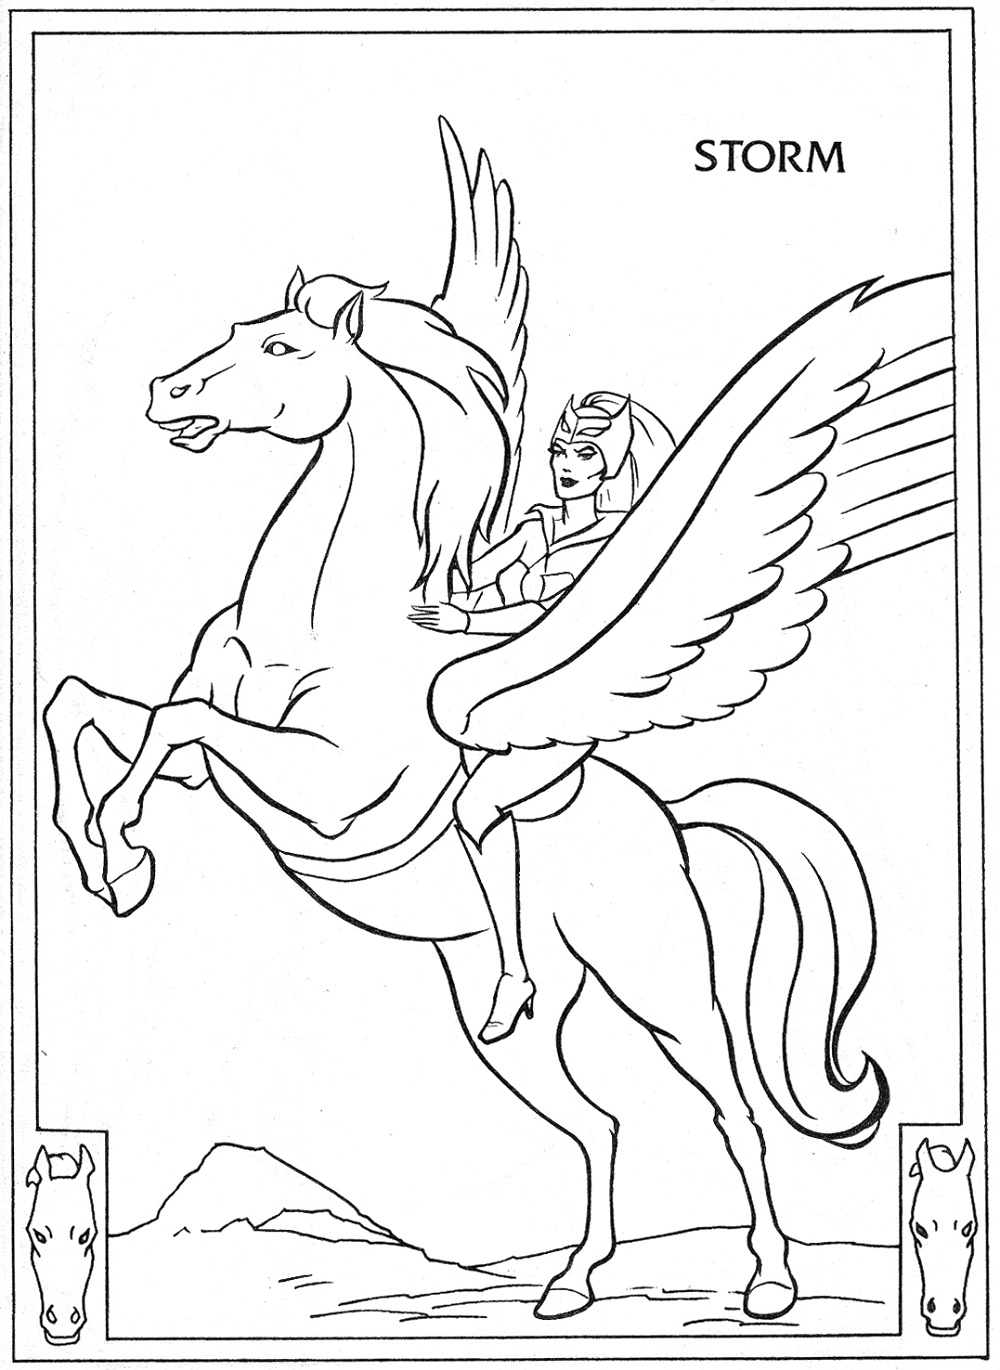 He Man Coloring Pages Storm